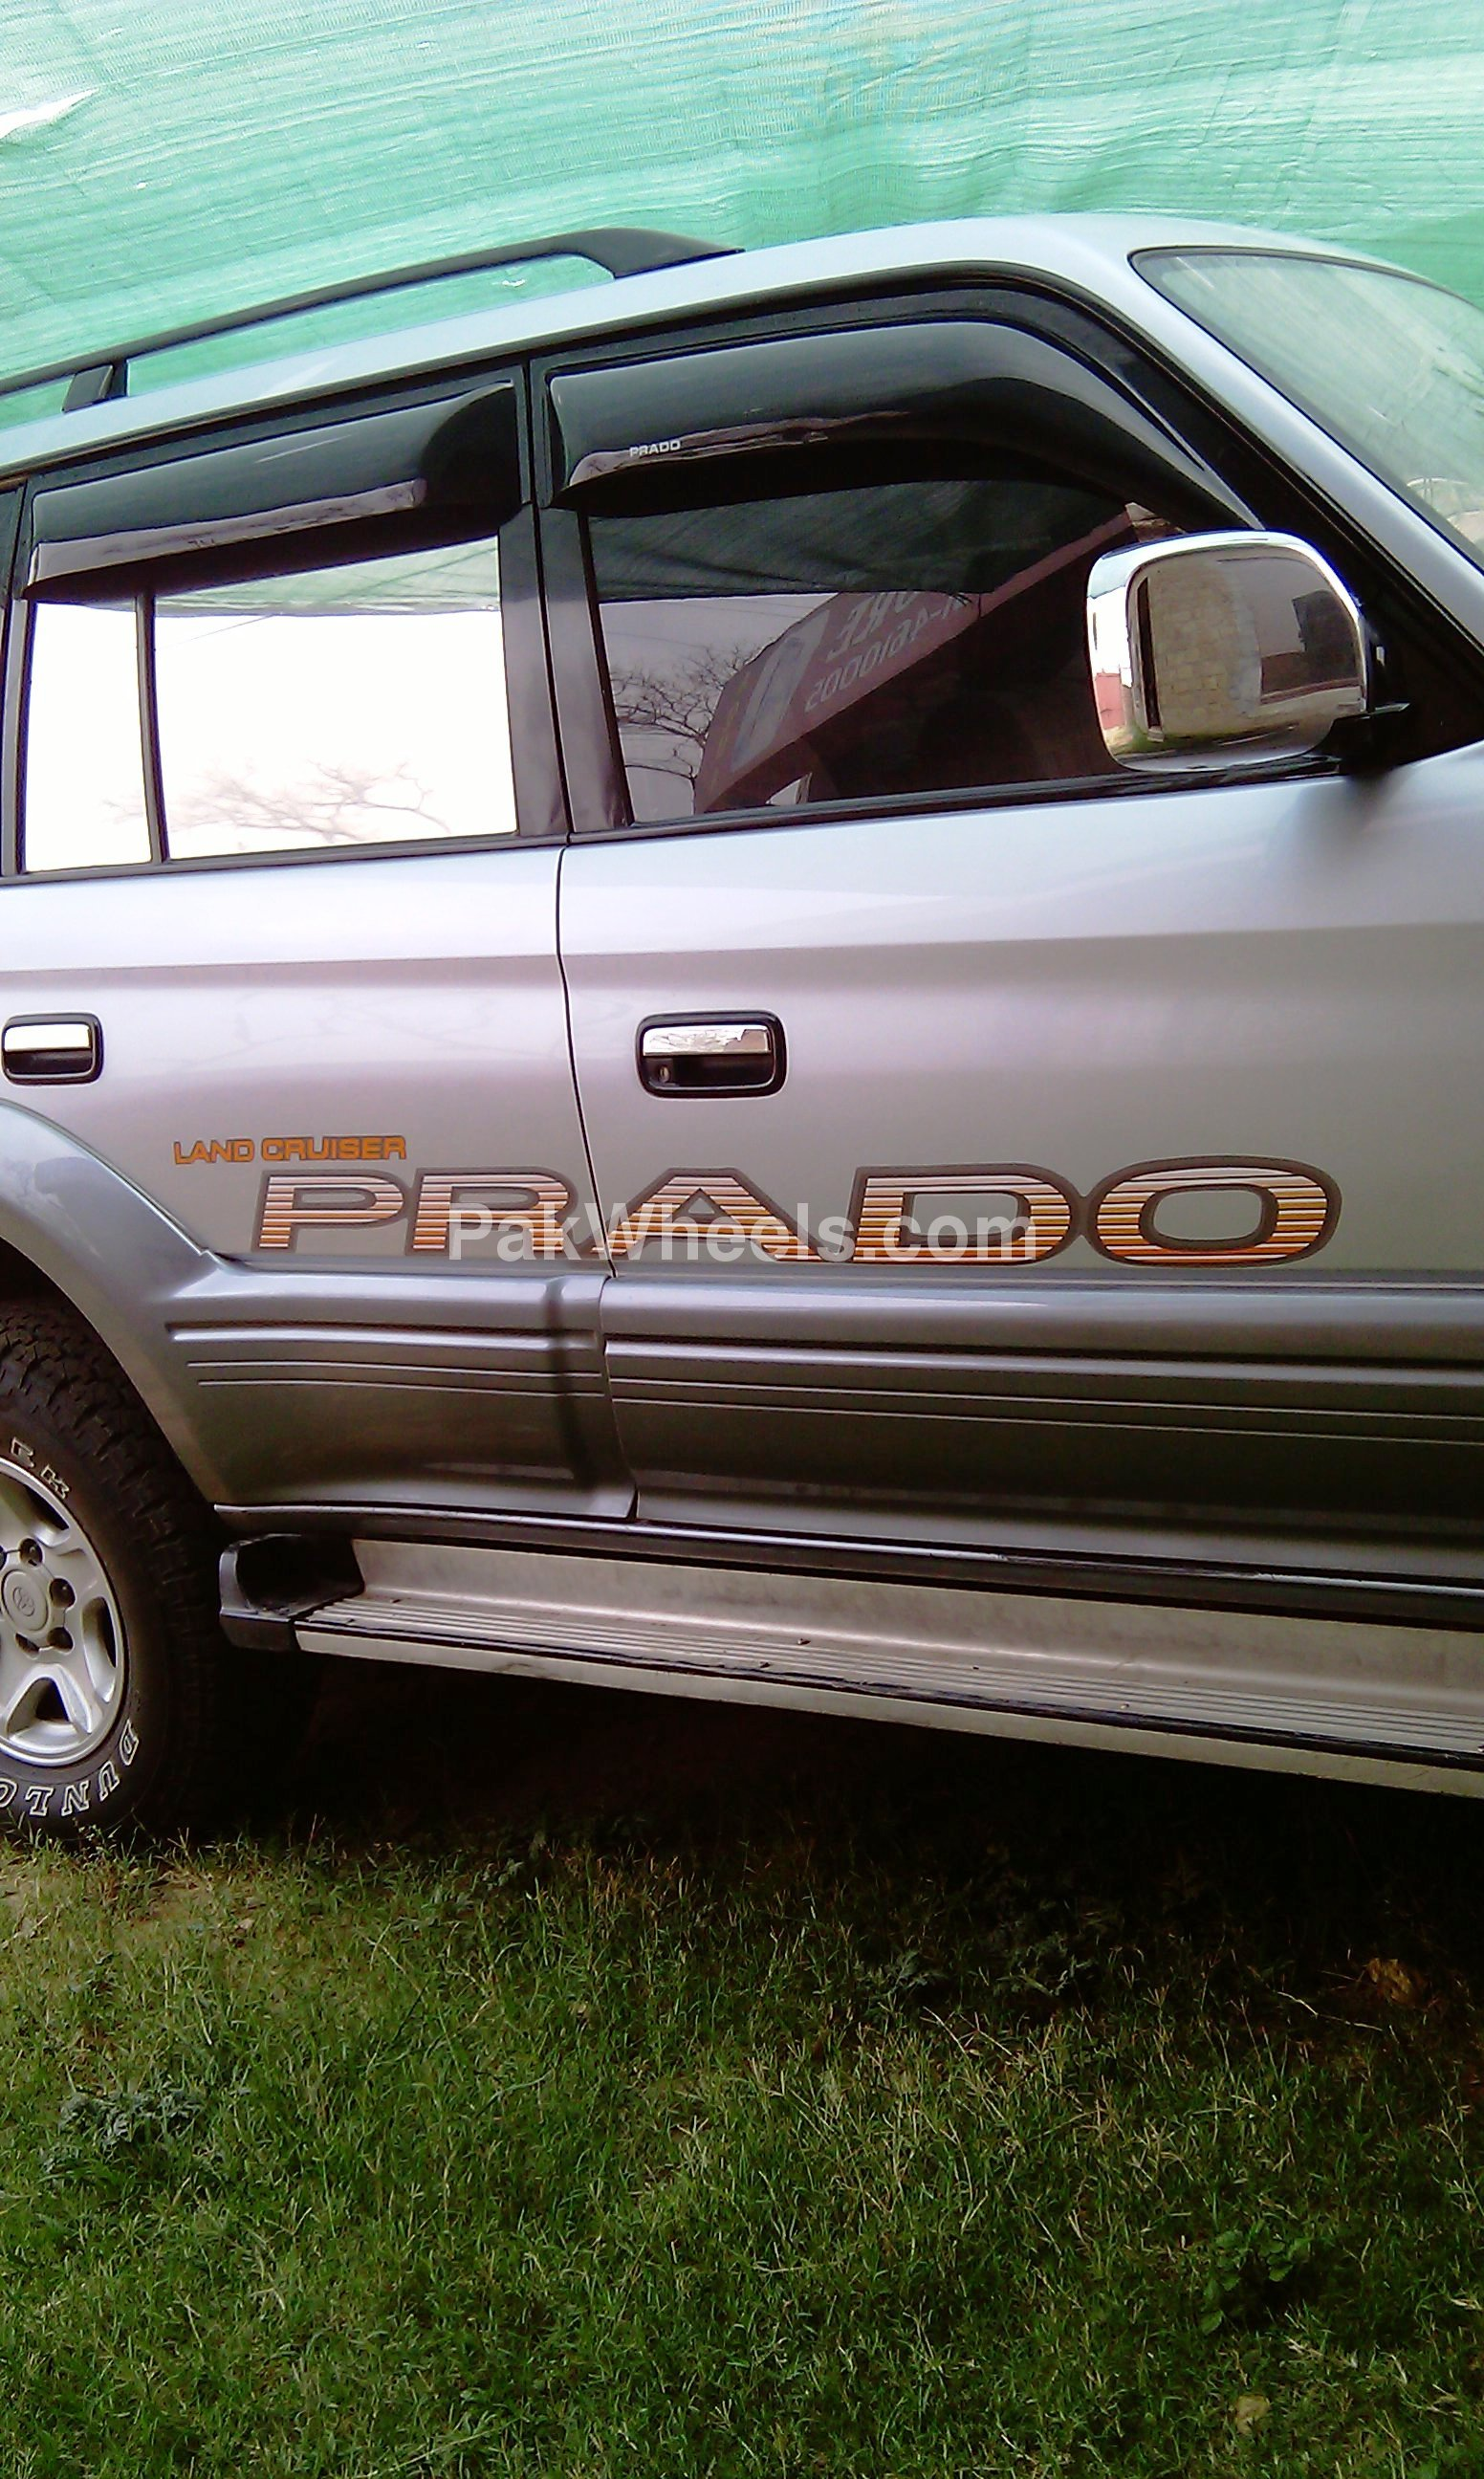 Used Toyota Land Cruiser Prado 3.0 N-turbo 1996 Car for sale in Islamabad - 242299 - 535260